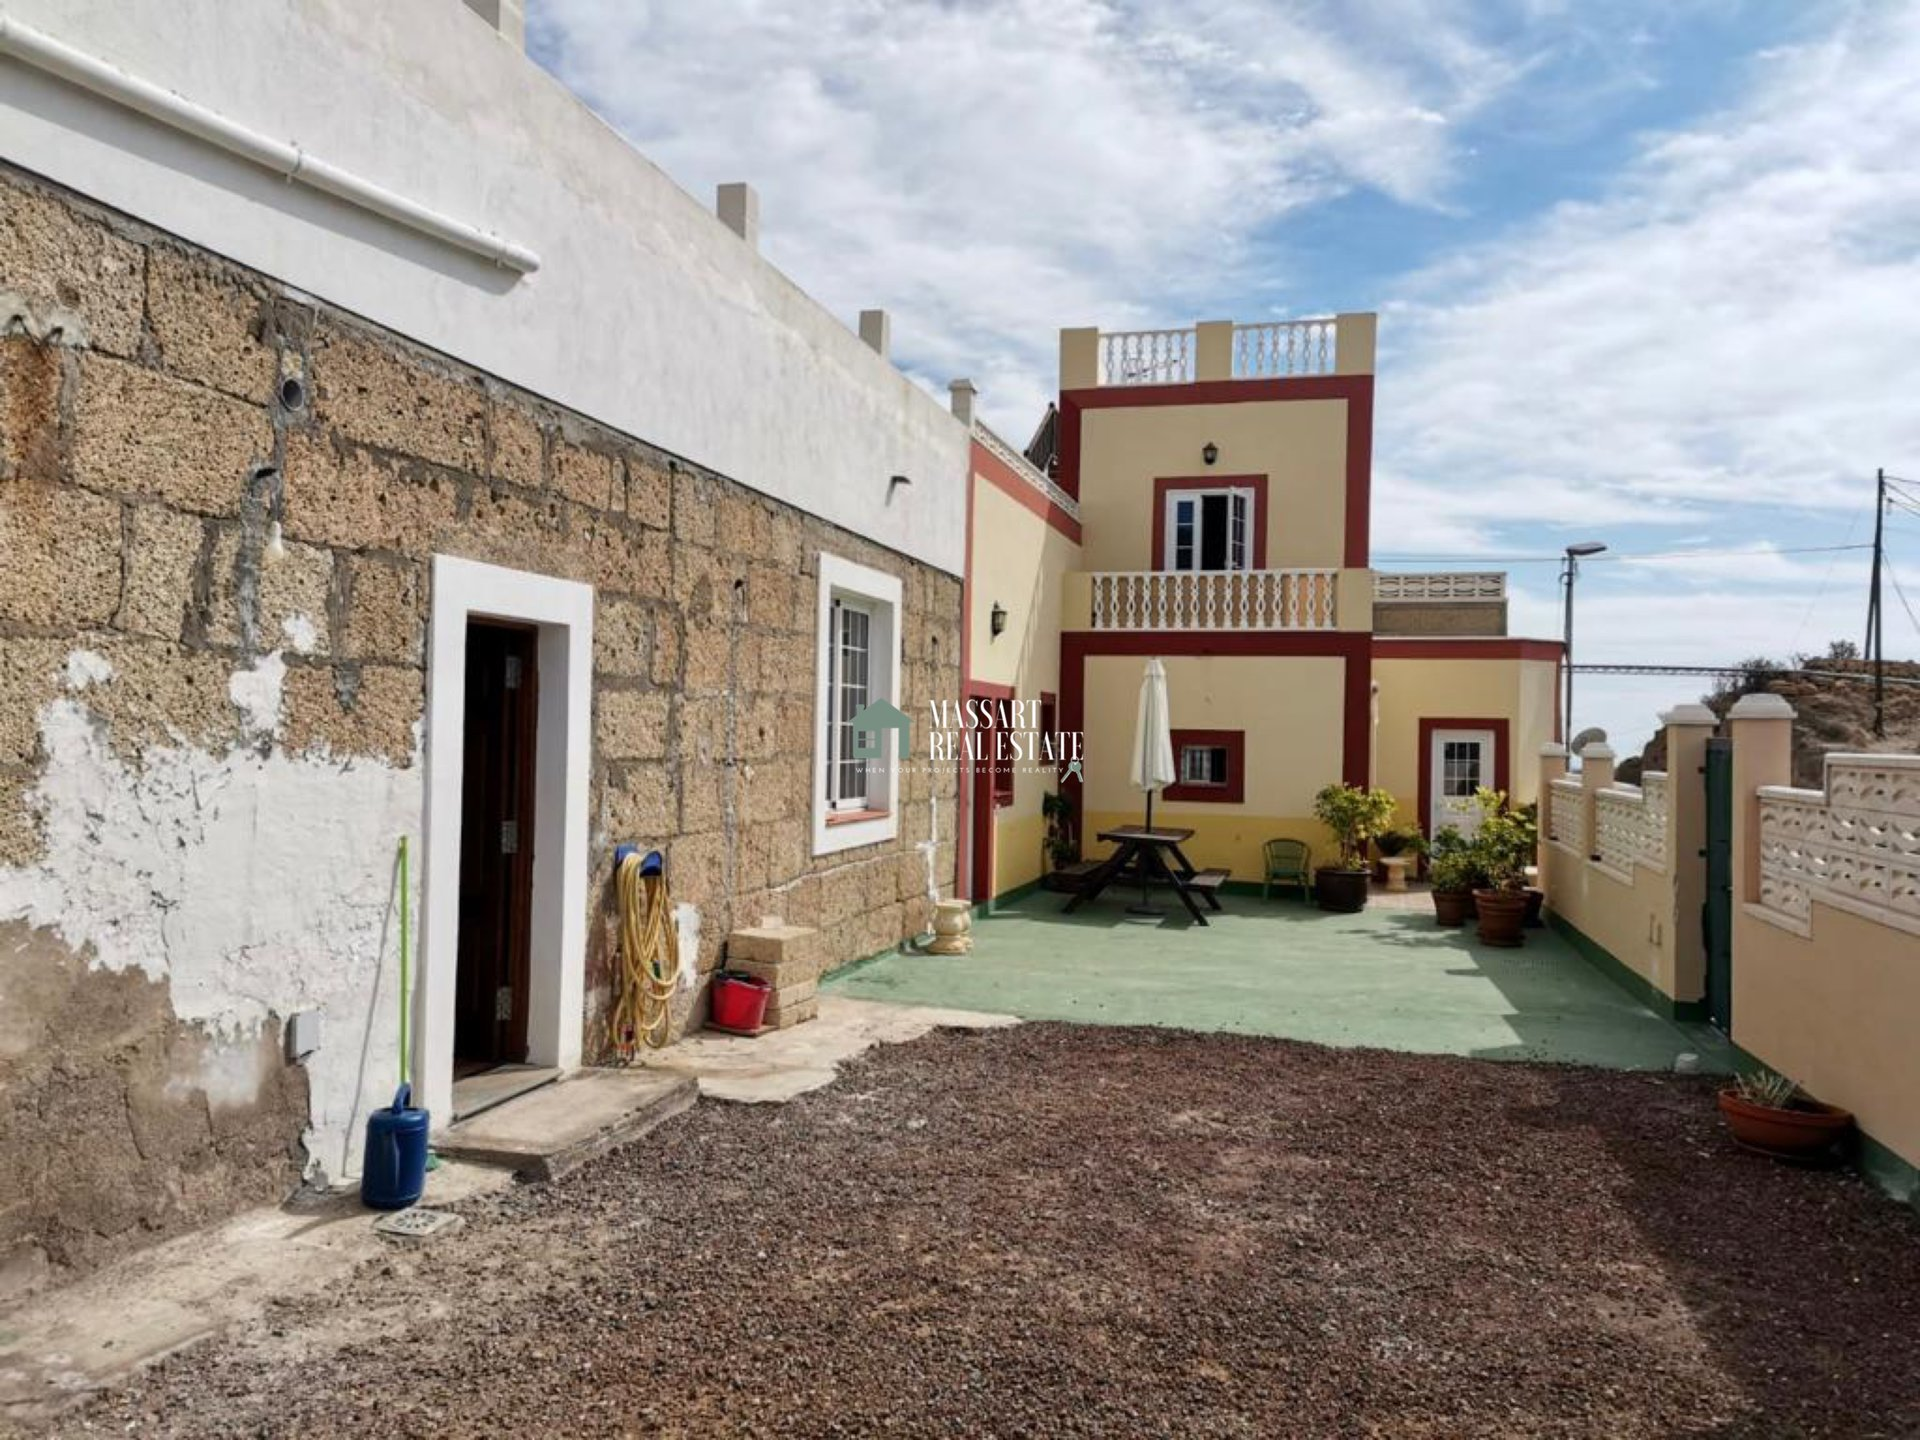 We present you today these complete and independent homes located on a 700 m2 plot in an environment of absolute tranquility in Granadilla de Abona.